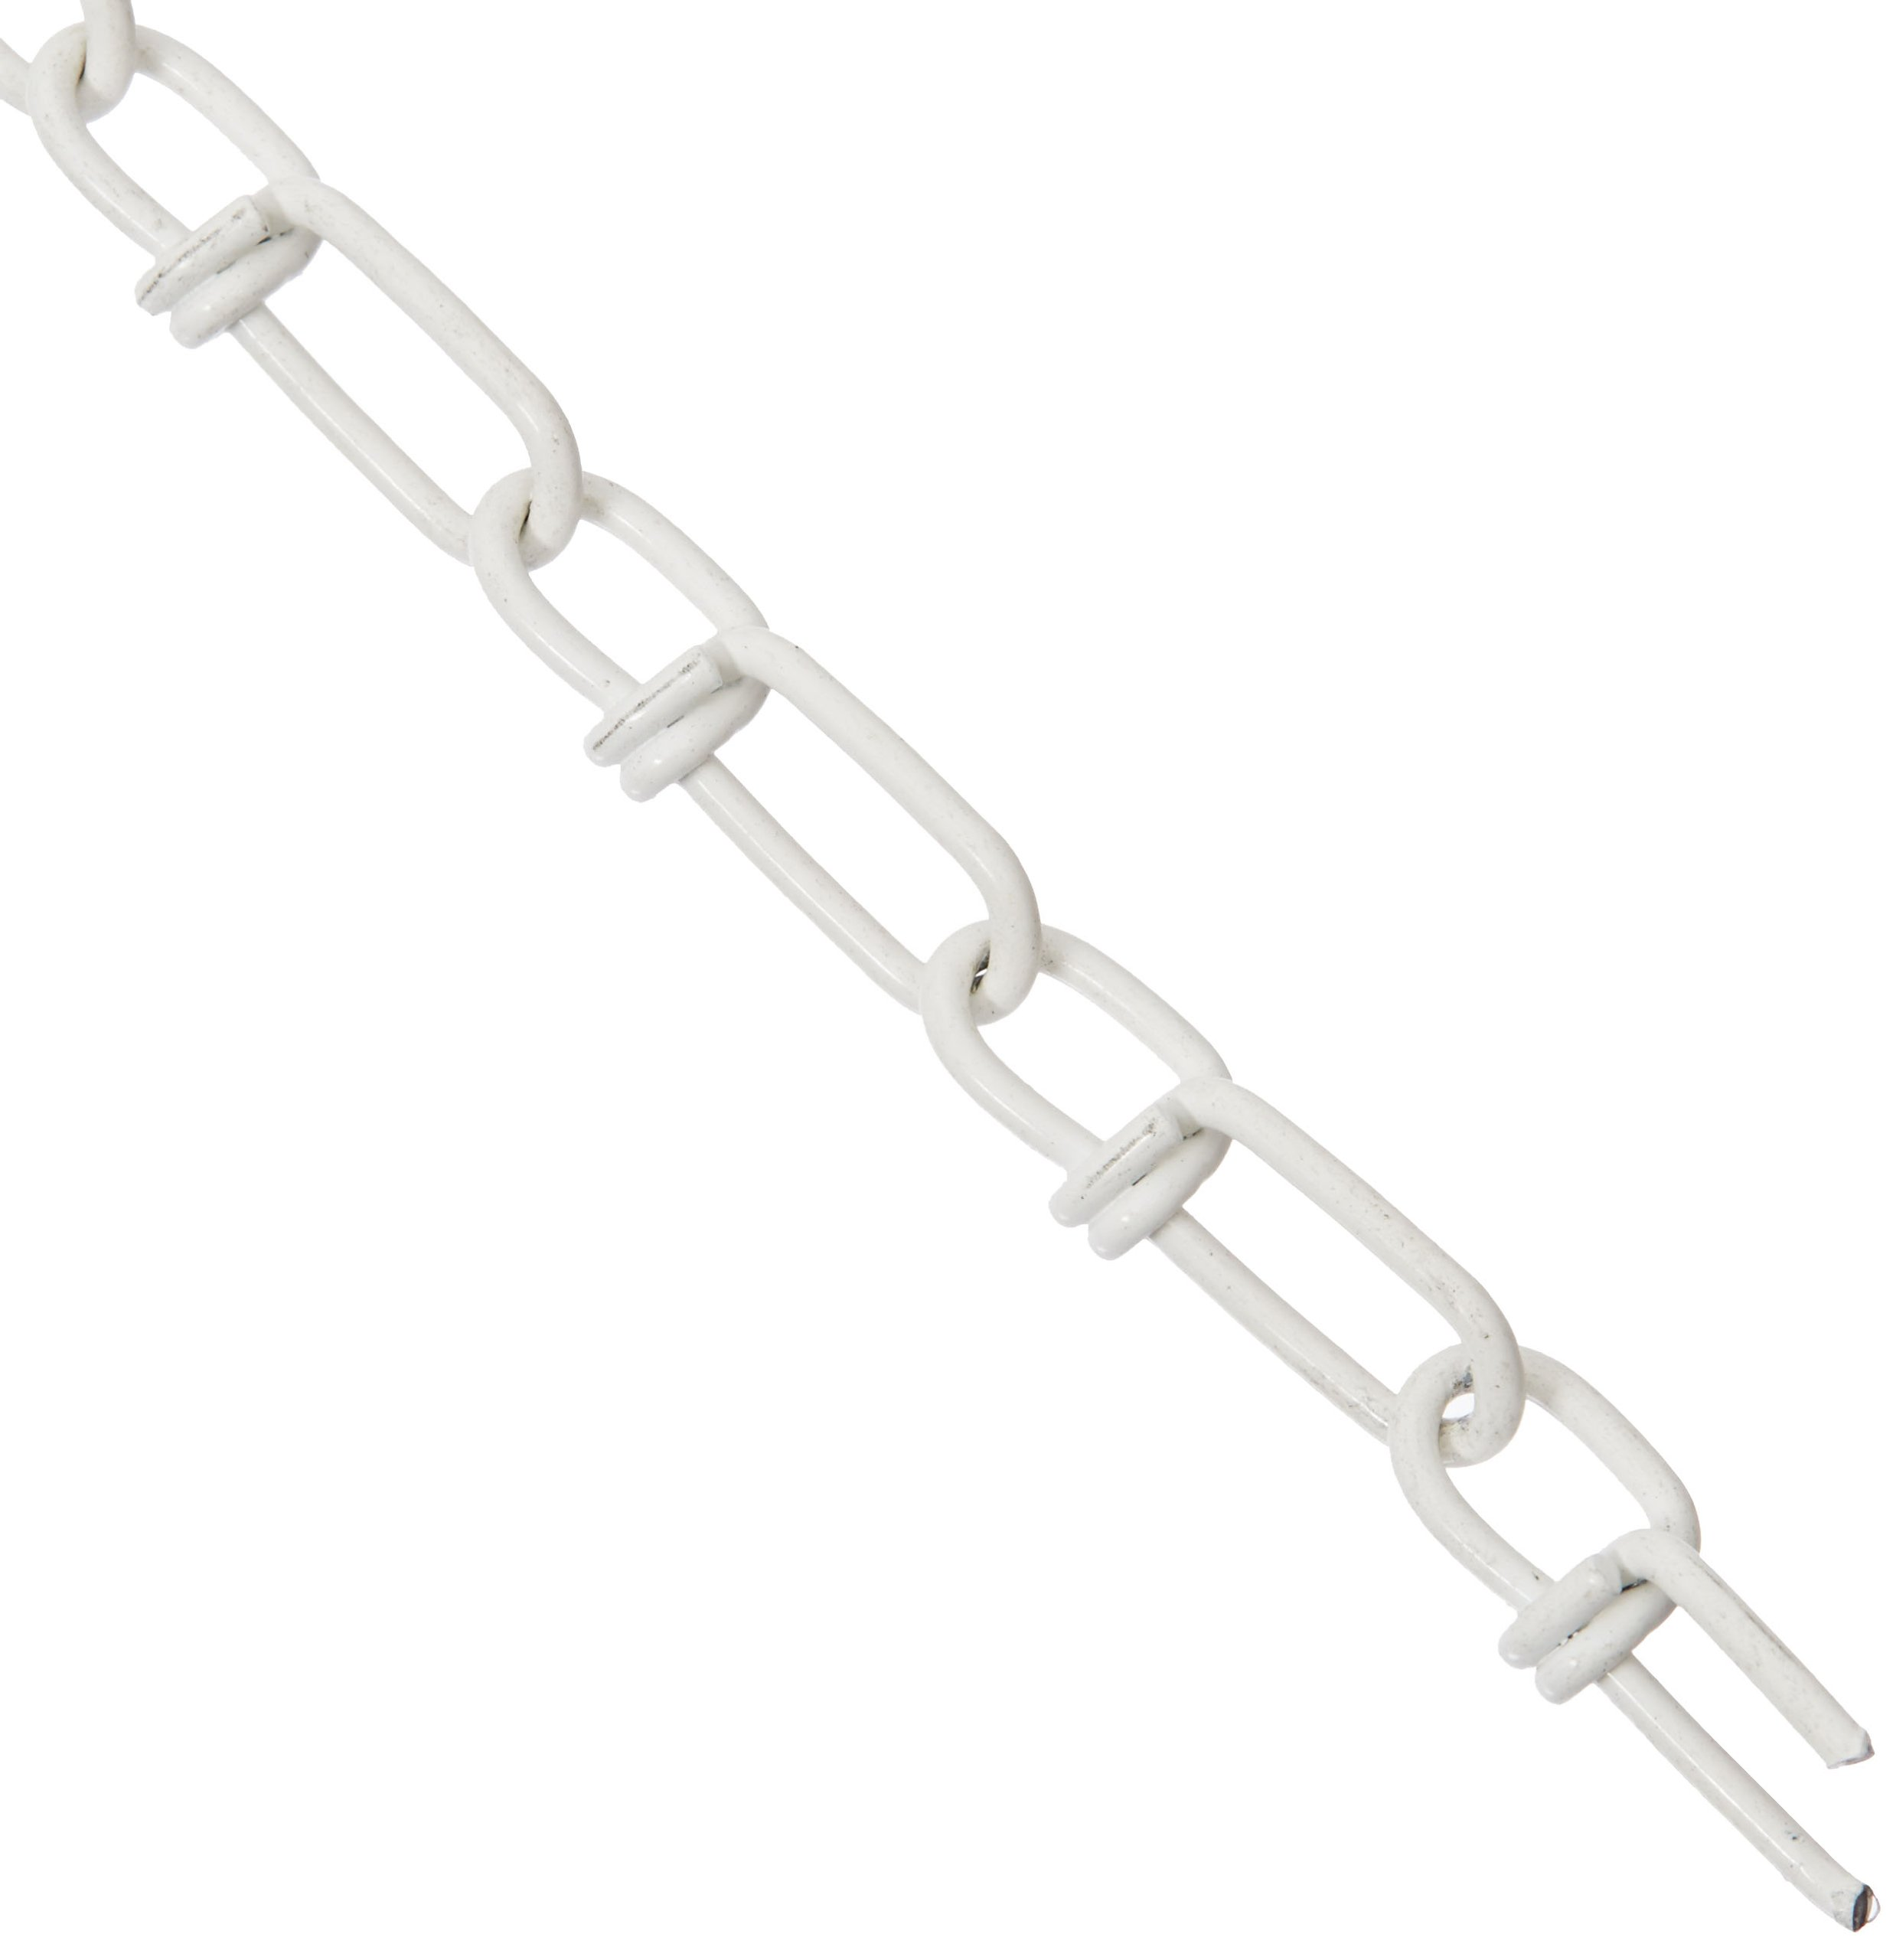 ASC MC13031715 Low Carbon Steel Inco Double Loop Chain, Polycoated White, #3 Trade, 0.08'' Diameter x 150' Length, 90 lbs Working Load Limit